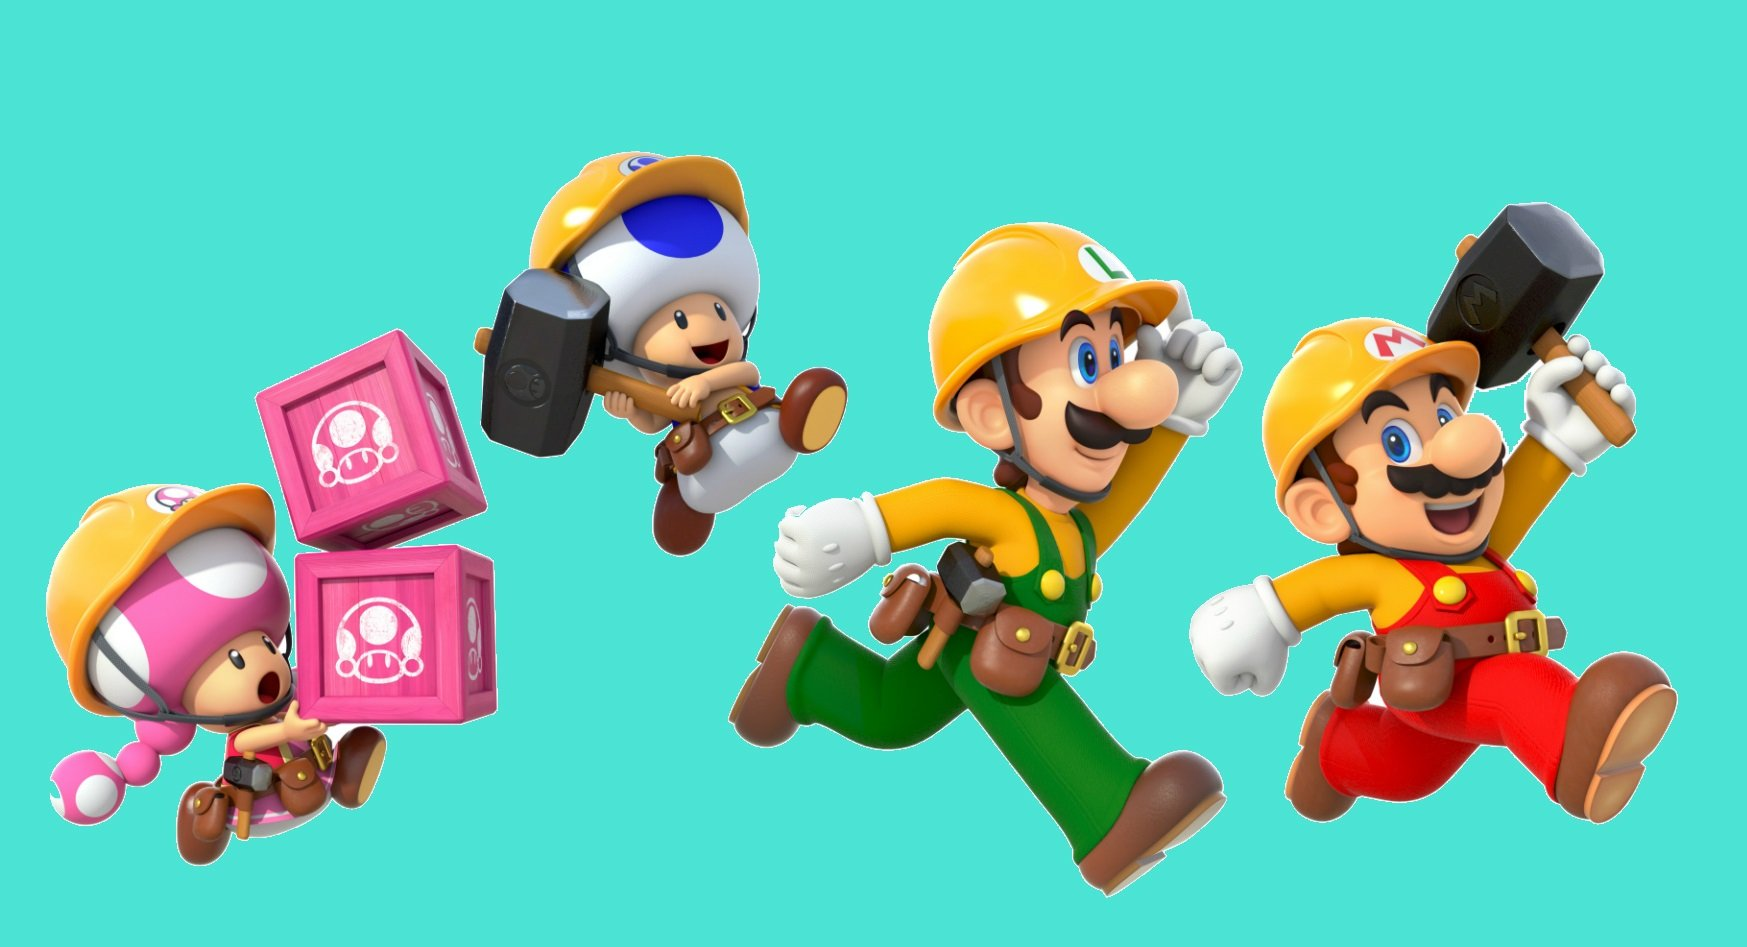 You can get new Mii Outfits in Super Mario Maker 2 by doing things like creating custom courses and playing through Story Mode.